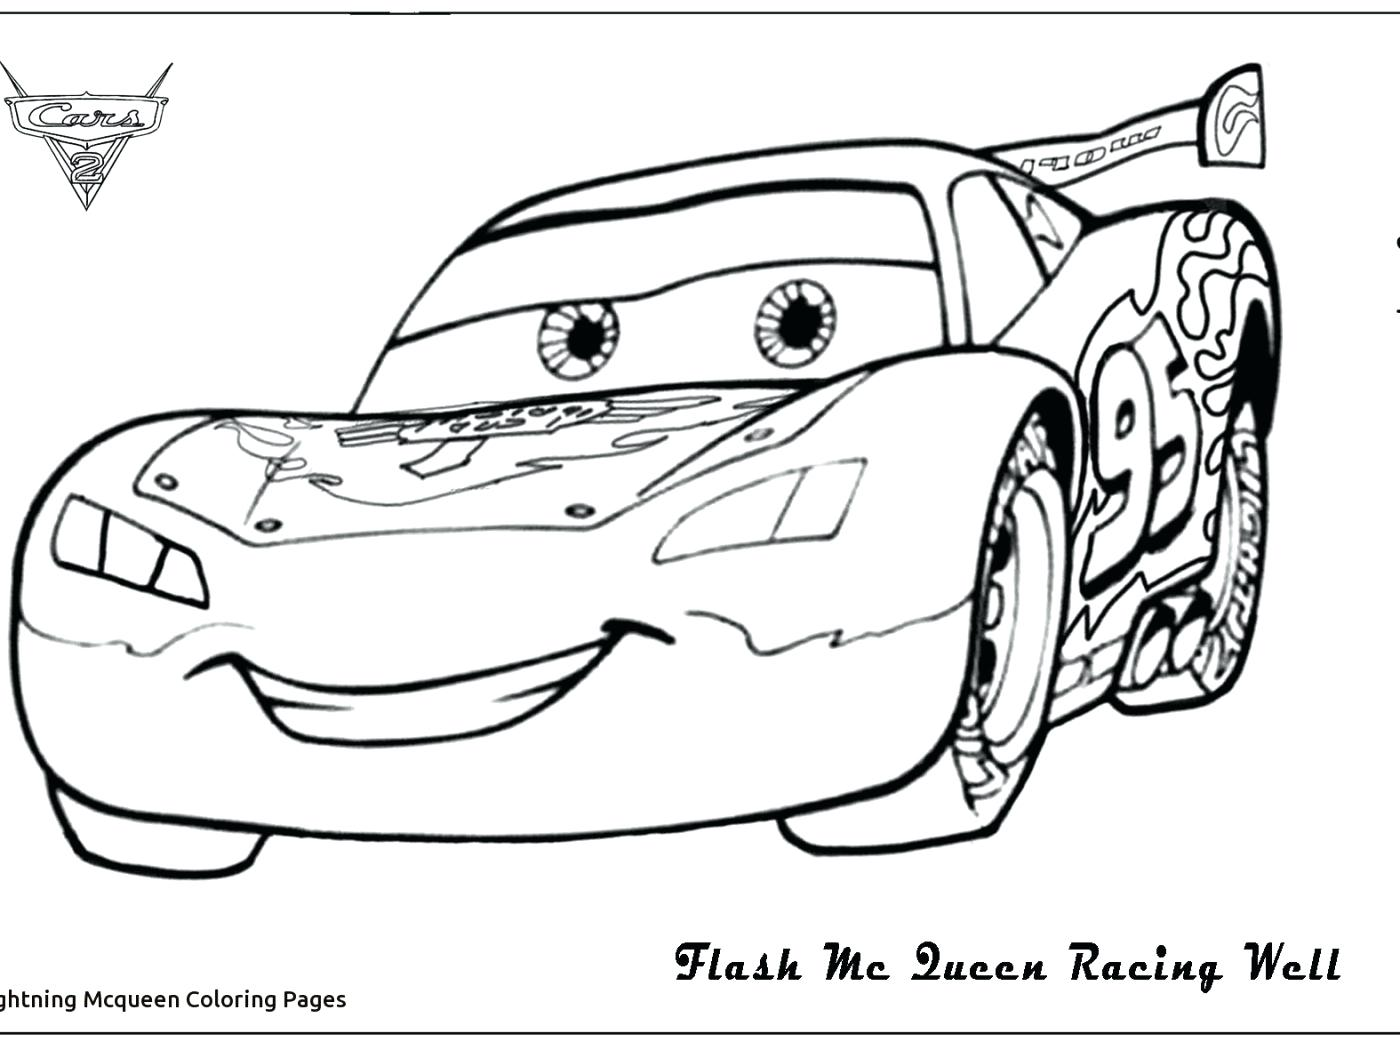 Lightning Mcqueen Drawing at GetDrawings.com | Free for personal use ...